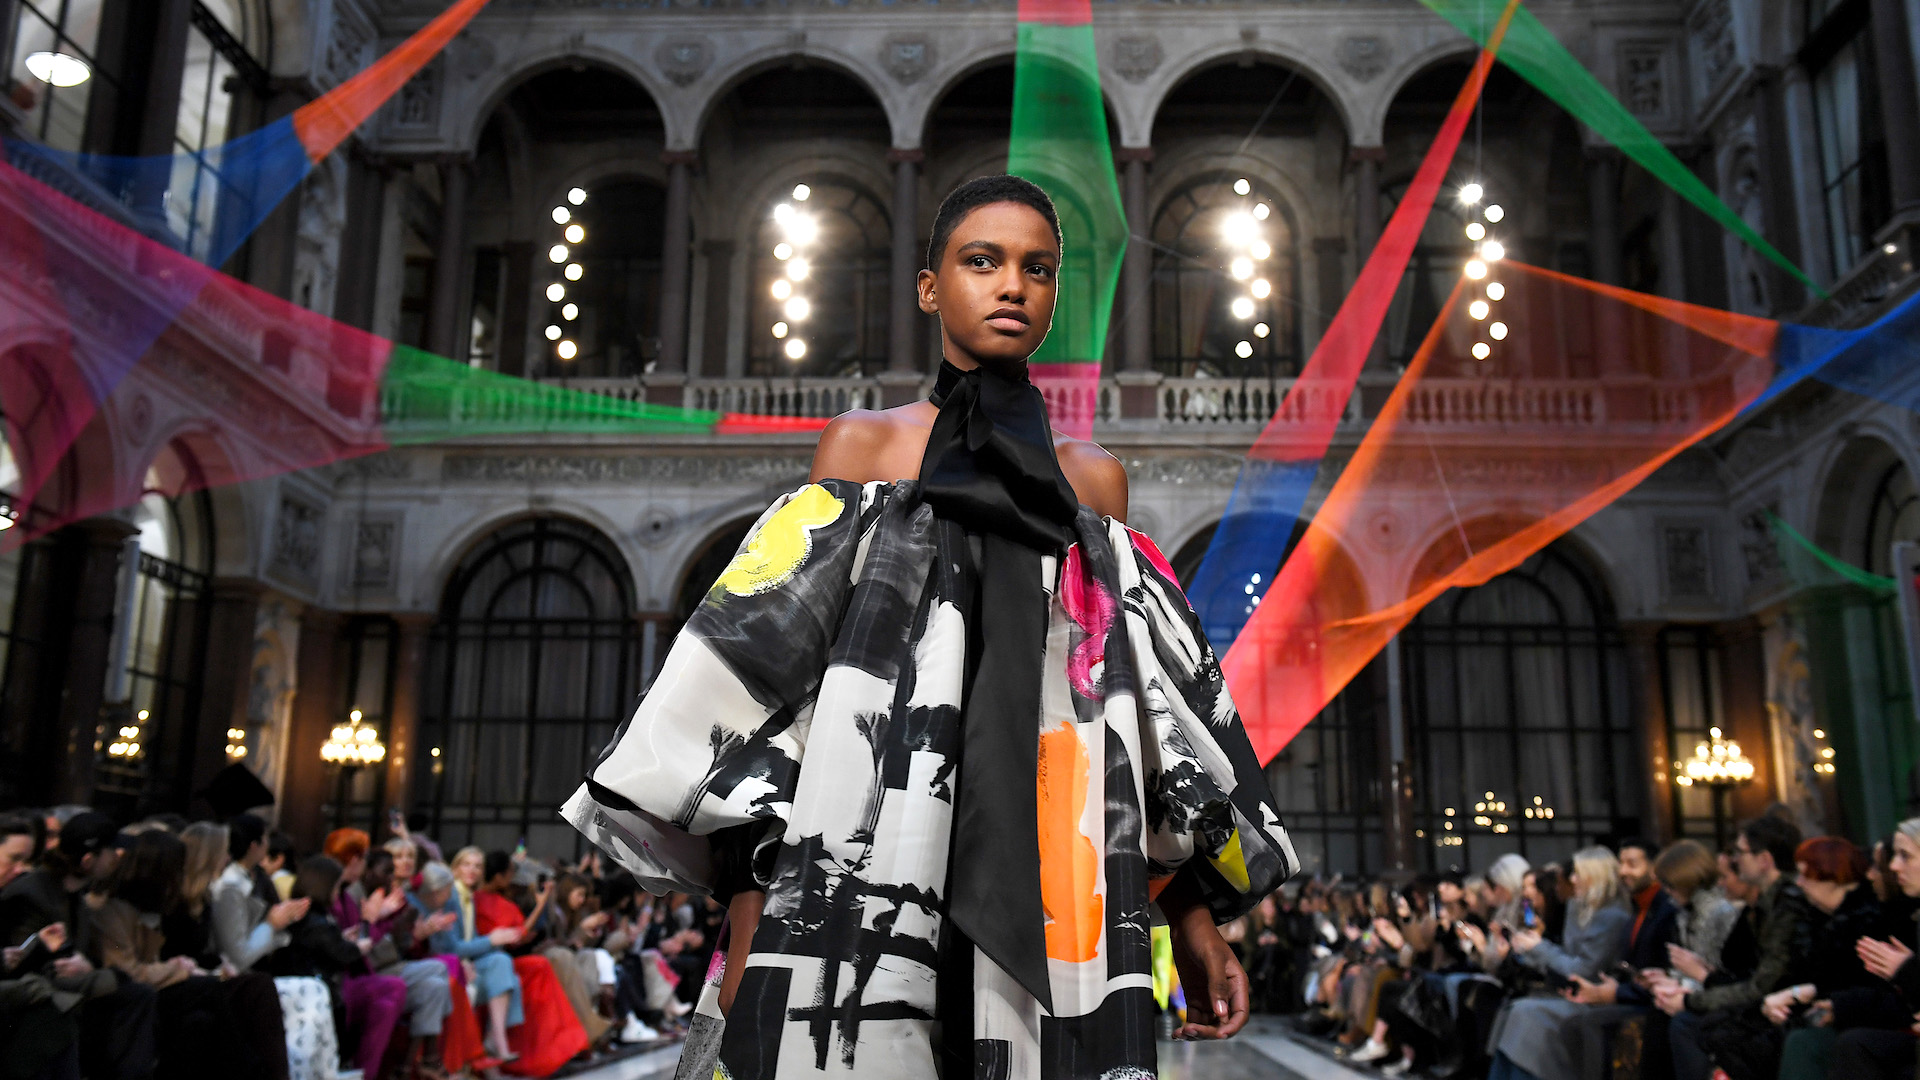 Paris, Milan and London Fashion Weeks Are All Going Digital This Year, So Unpack Your Suitcases